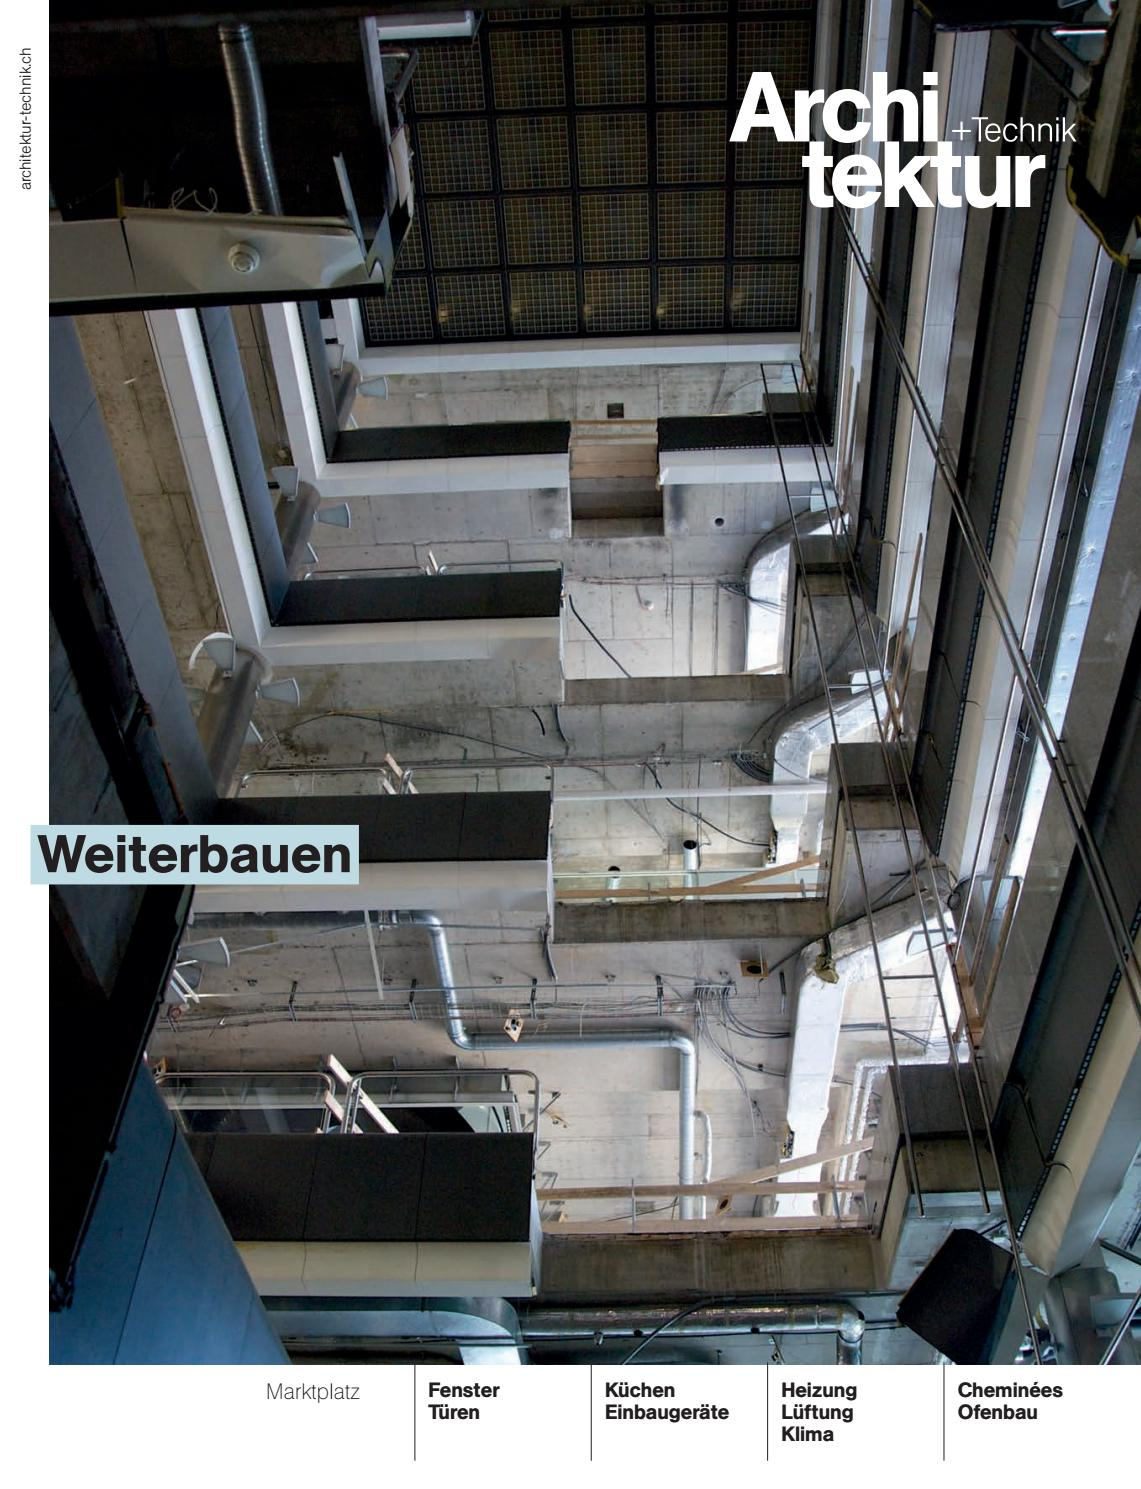 Architektur+Technik 08 2015 by BL Verlag AG - issuu